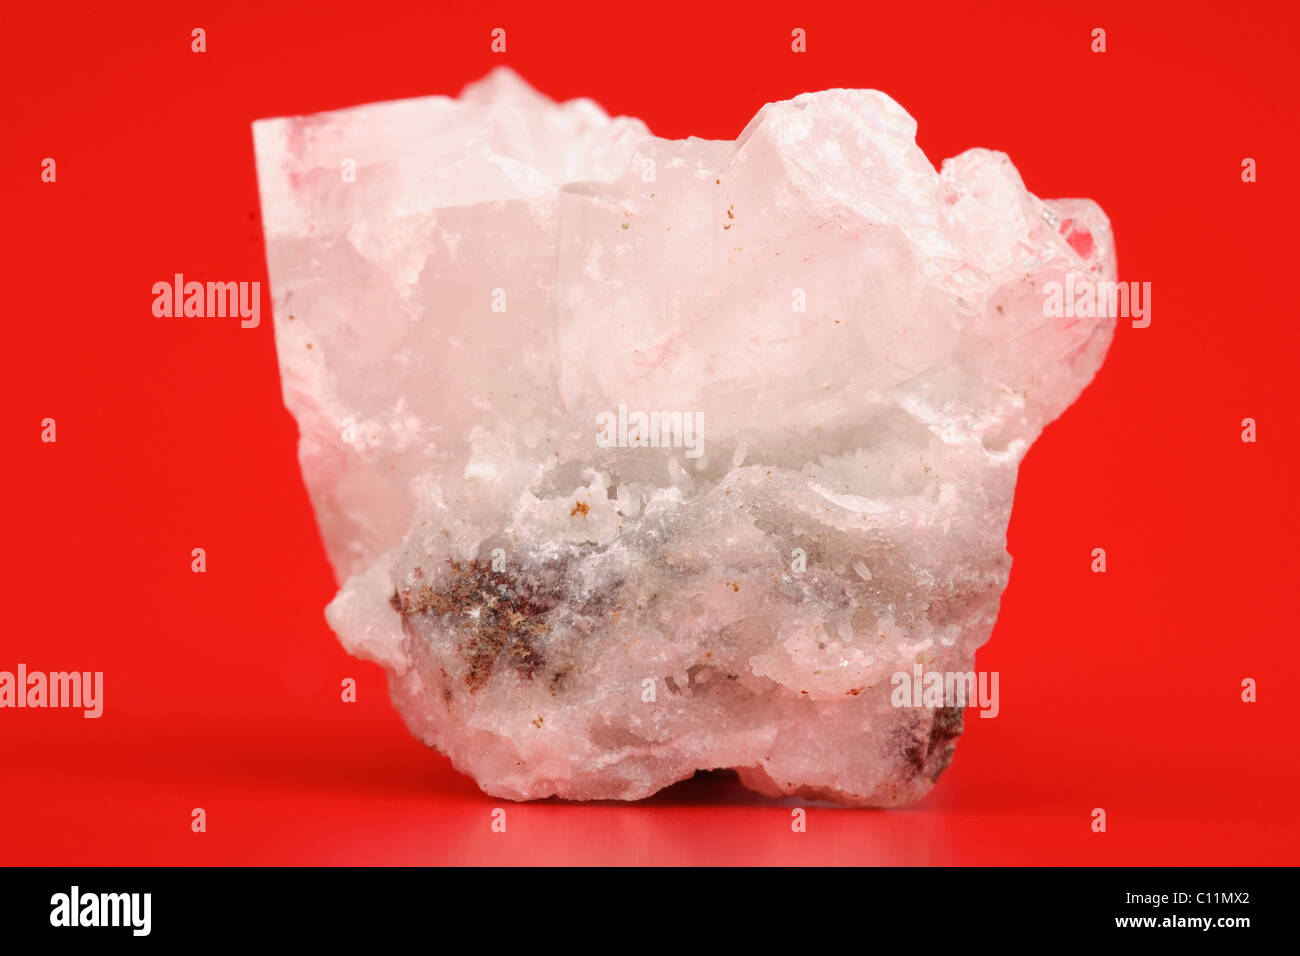 Mineral rock sample of Zeolite from India - Stock Image